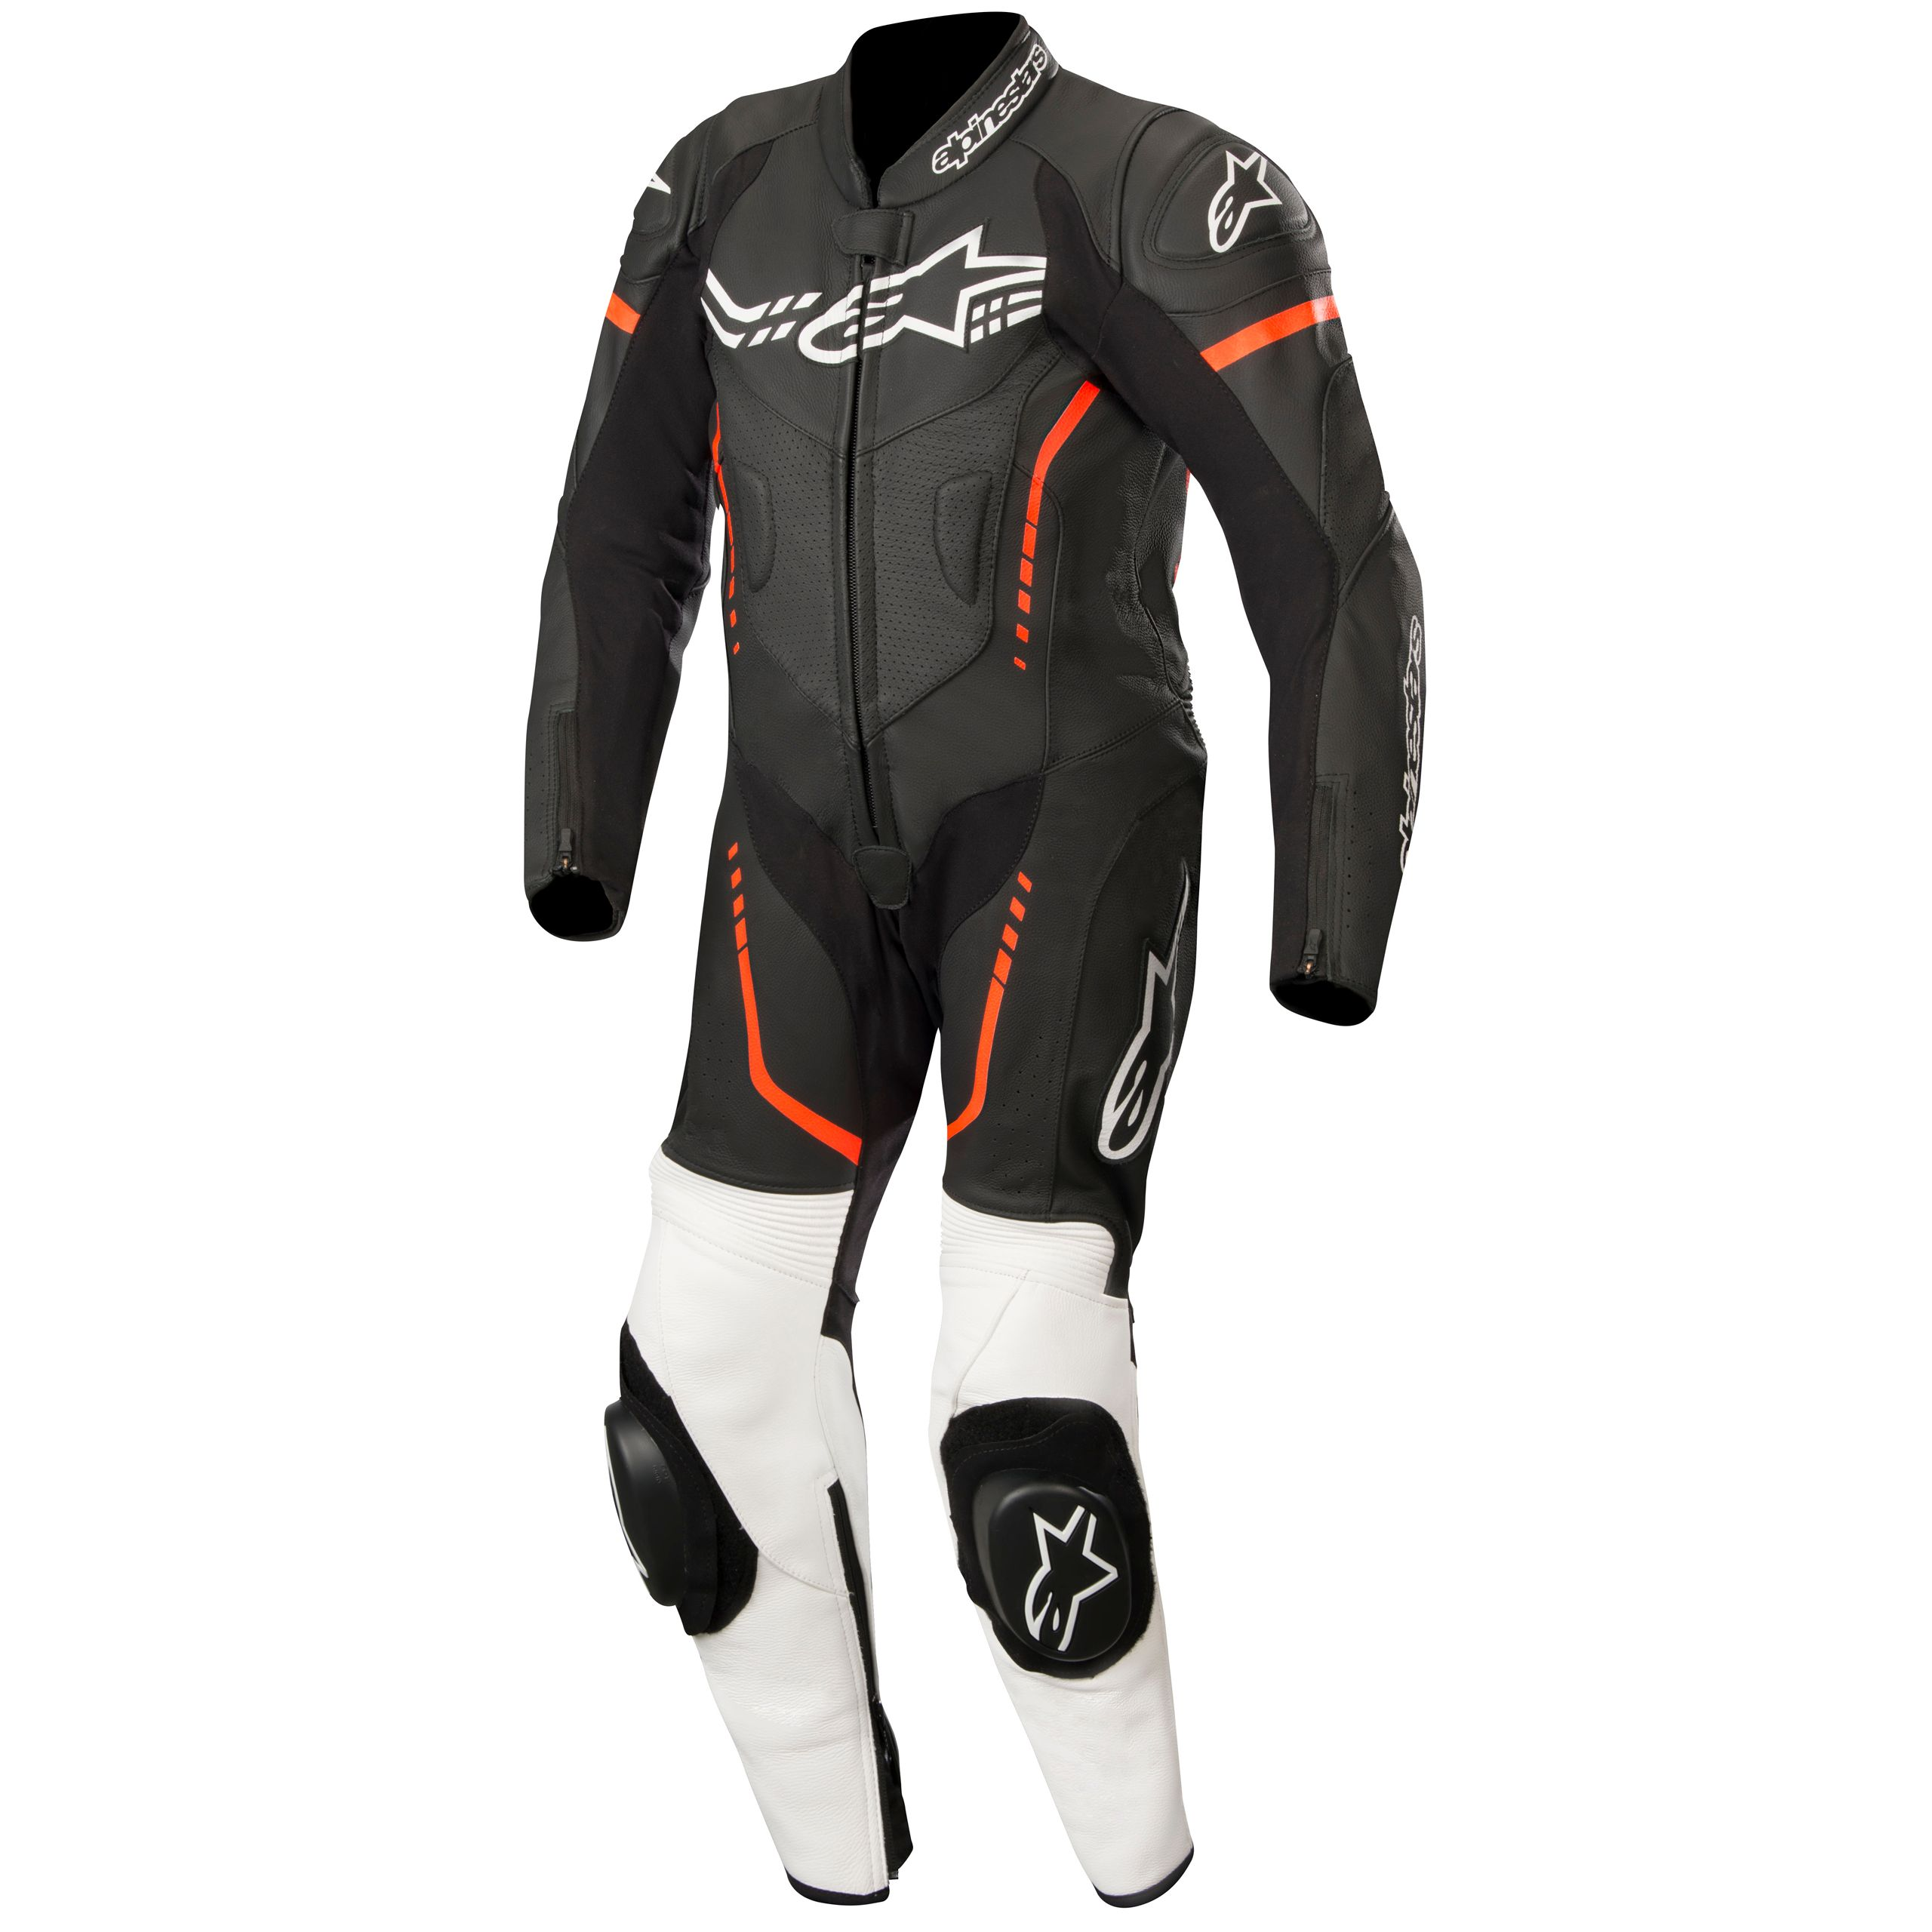 combinaison alpinestars youth gp plus 1 piece pantalon et combinaison. Black Bedroom Furniture Sets. Home Design Ideas